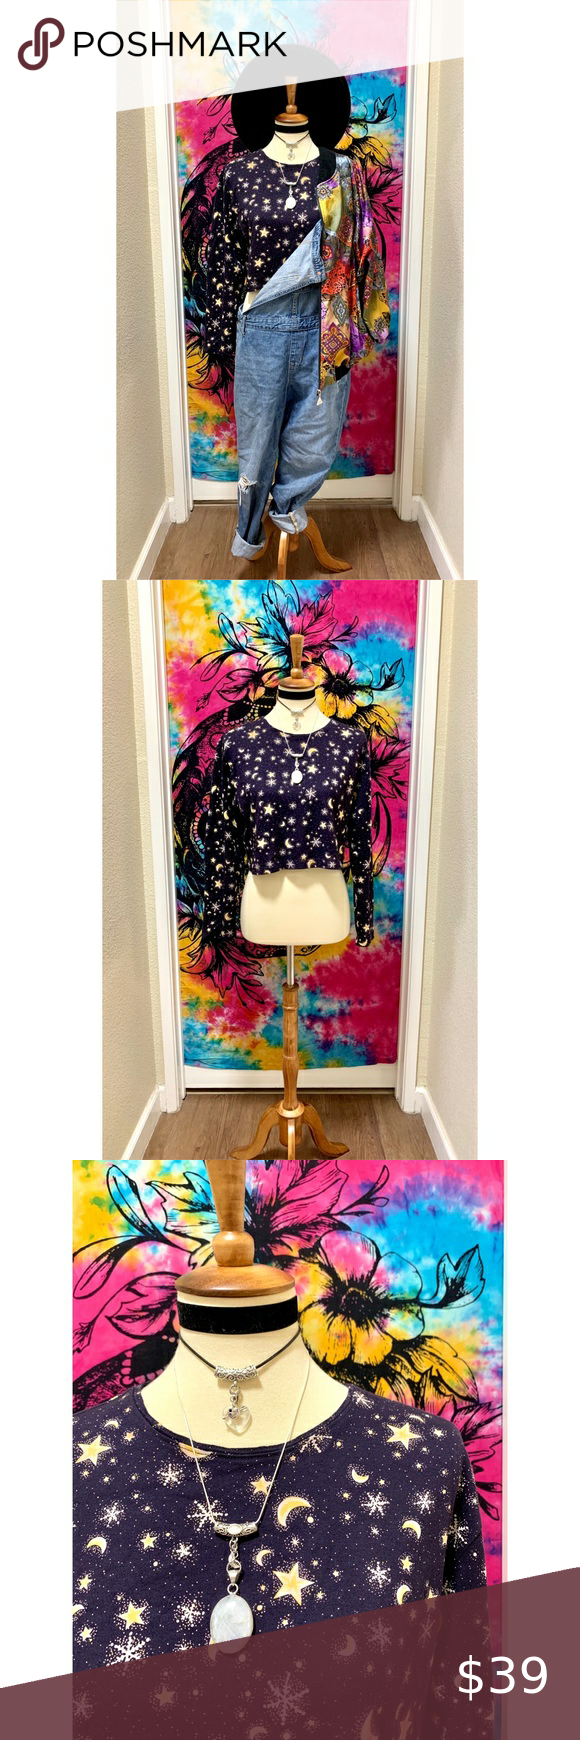 , Stylish moon star Vintage beauty This Vintage beauty moon crop top is ready for your every day style. Every inch is perfect with its mystical pattern …, My Pop Star Kda Blog, My Pop Star Kda Blog